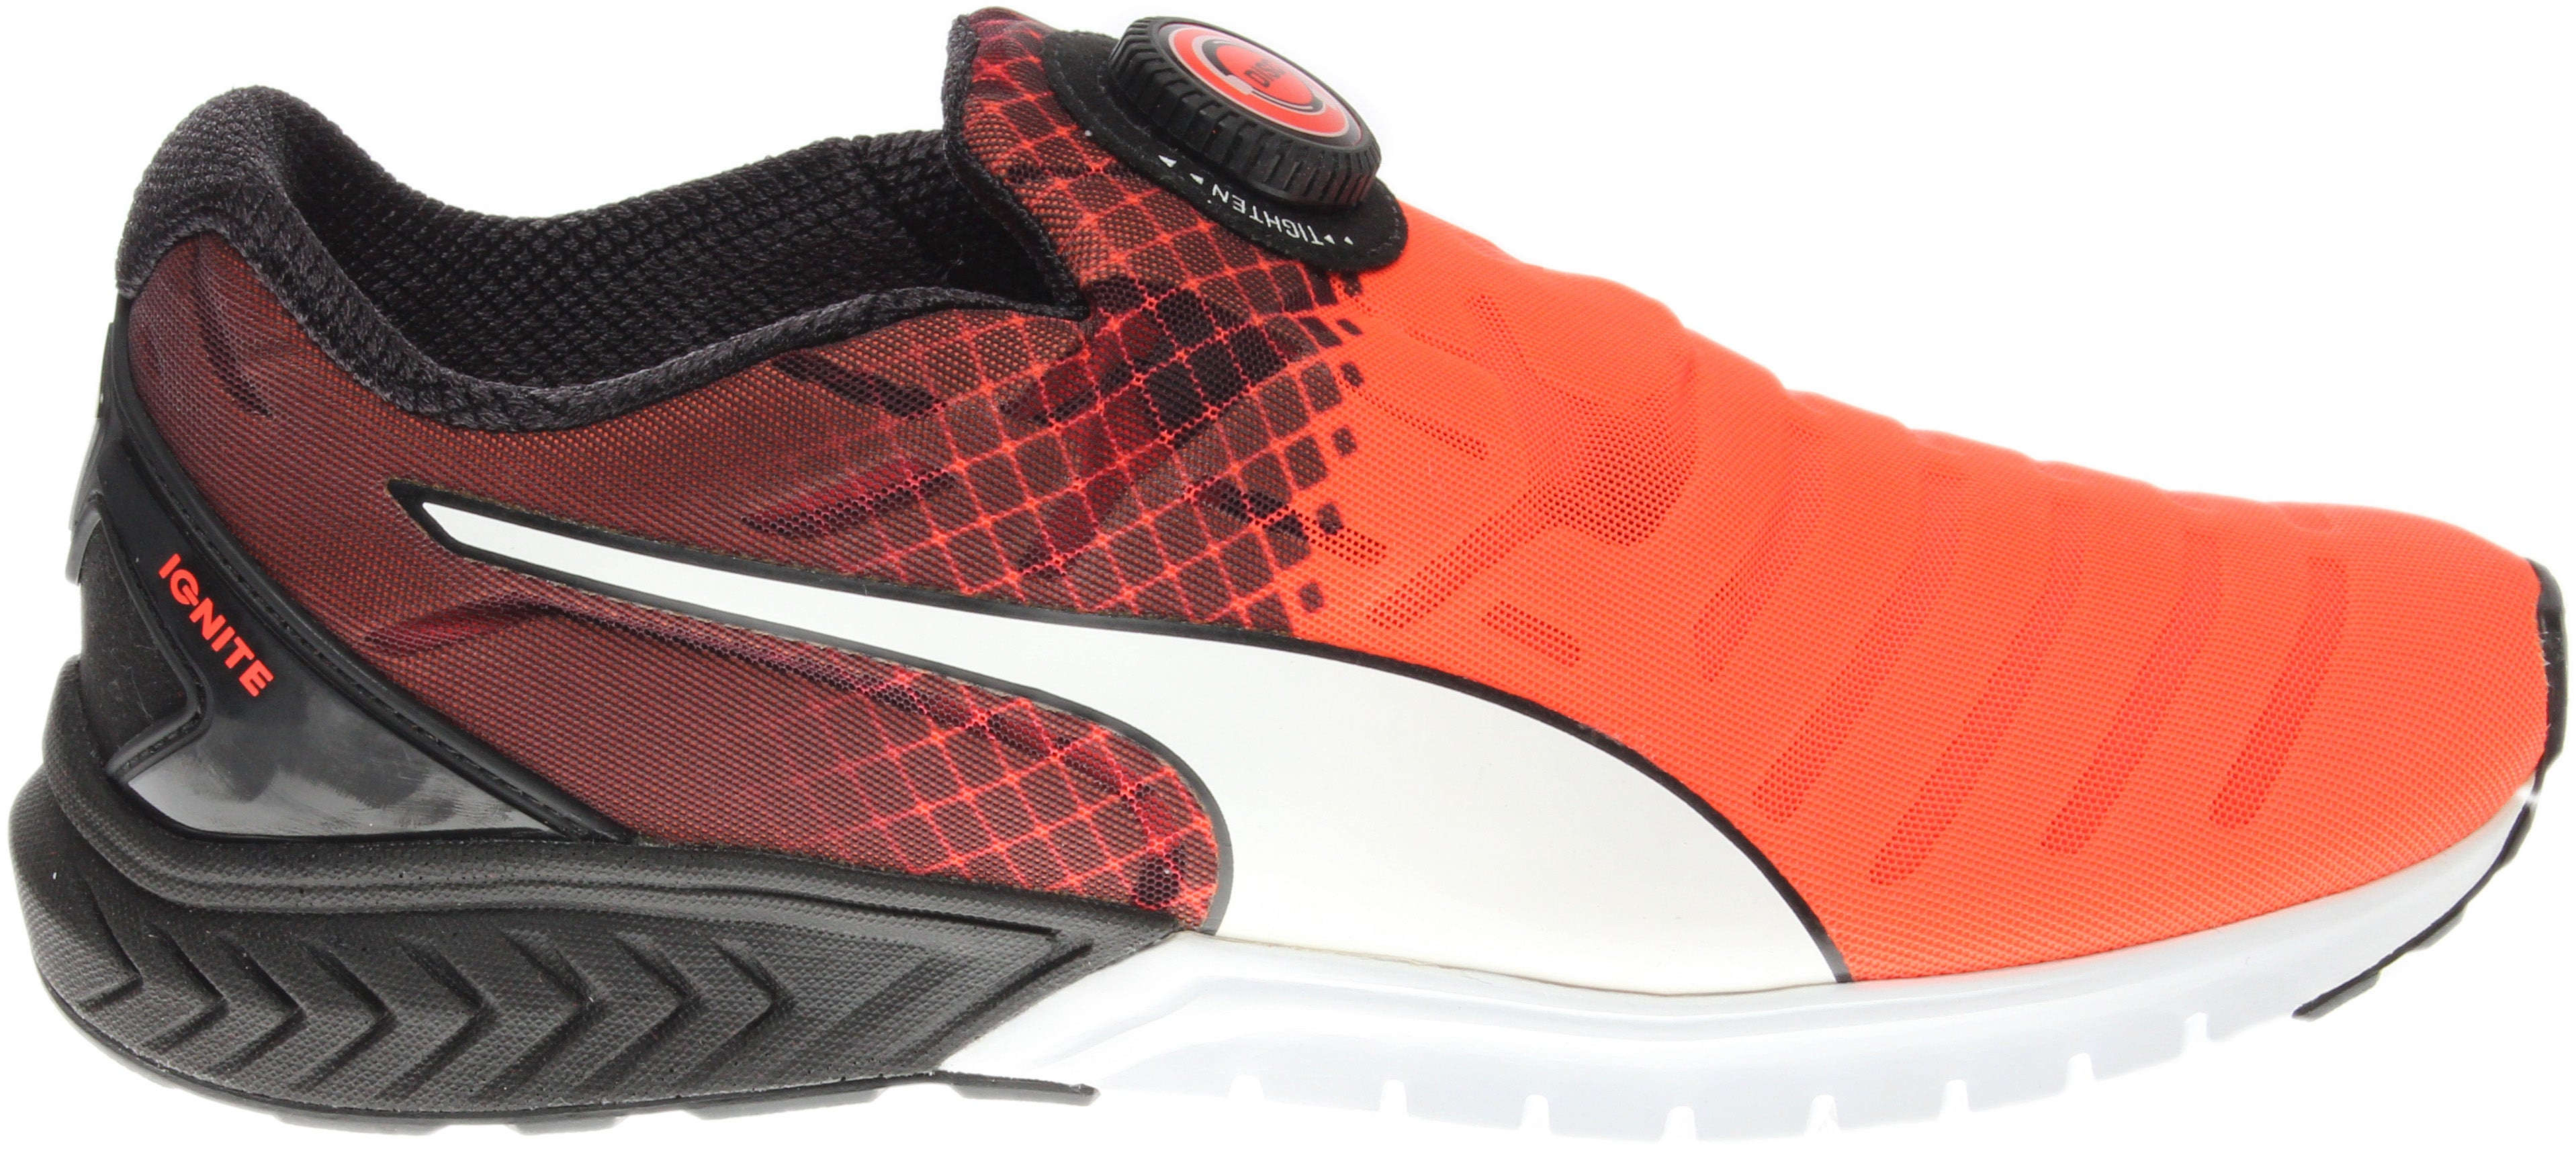 Puma Ignite Dual Disc Orange - Mens  - Size